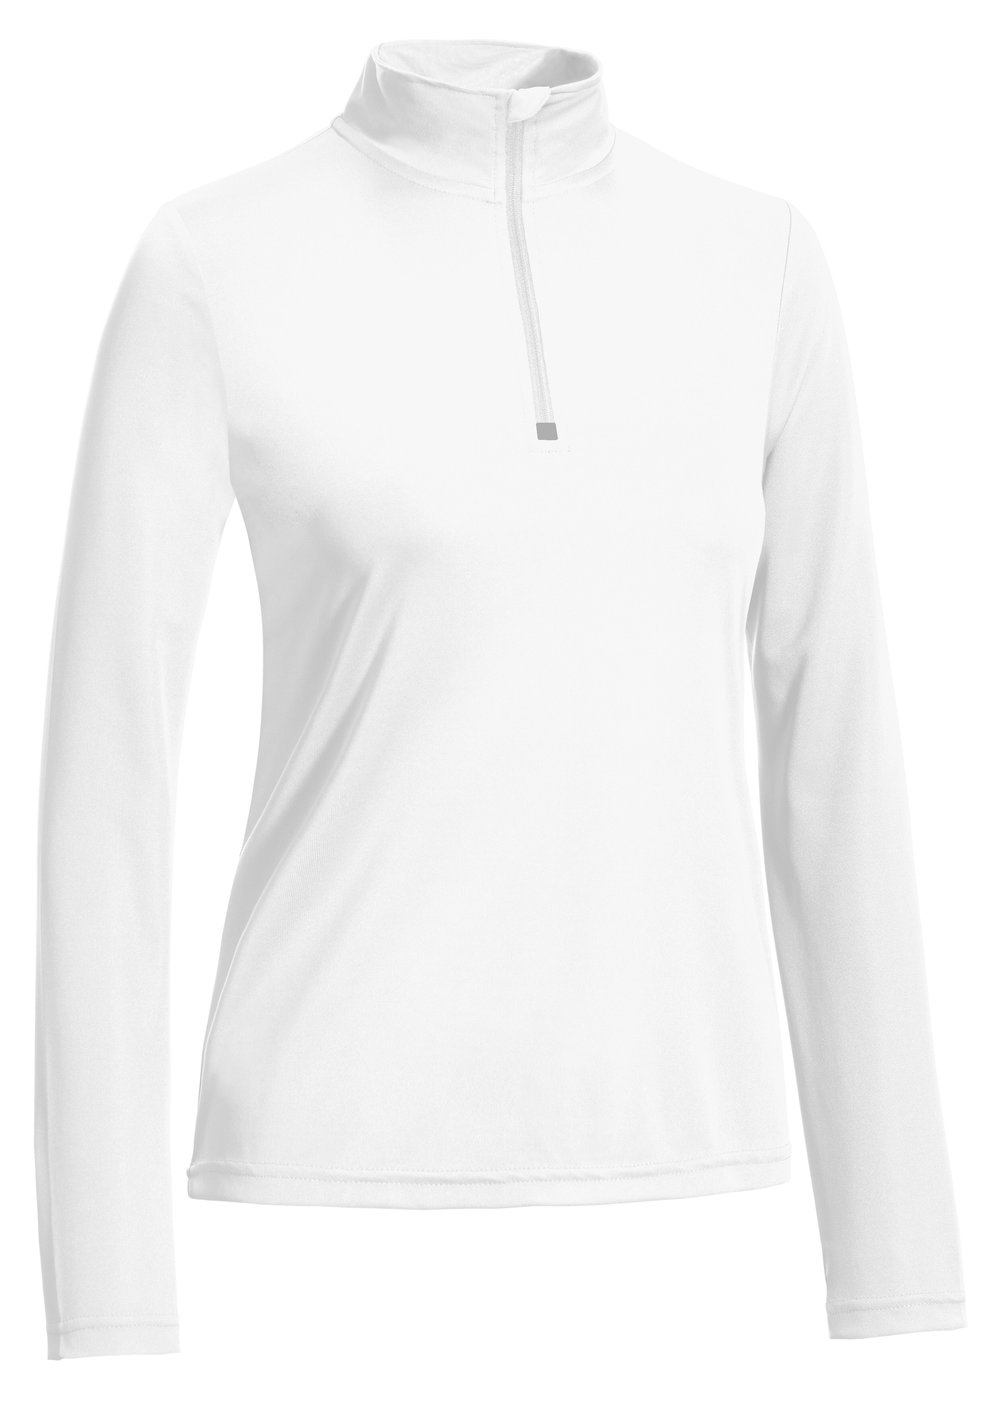 Women's 1/4 Training Zip